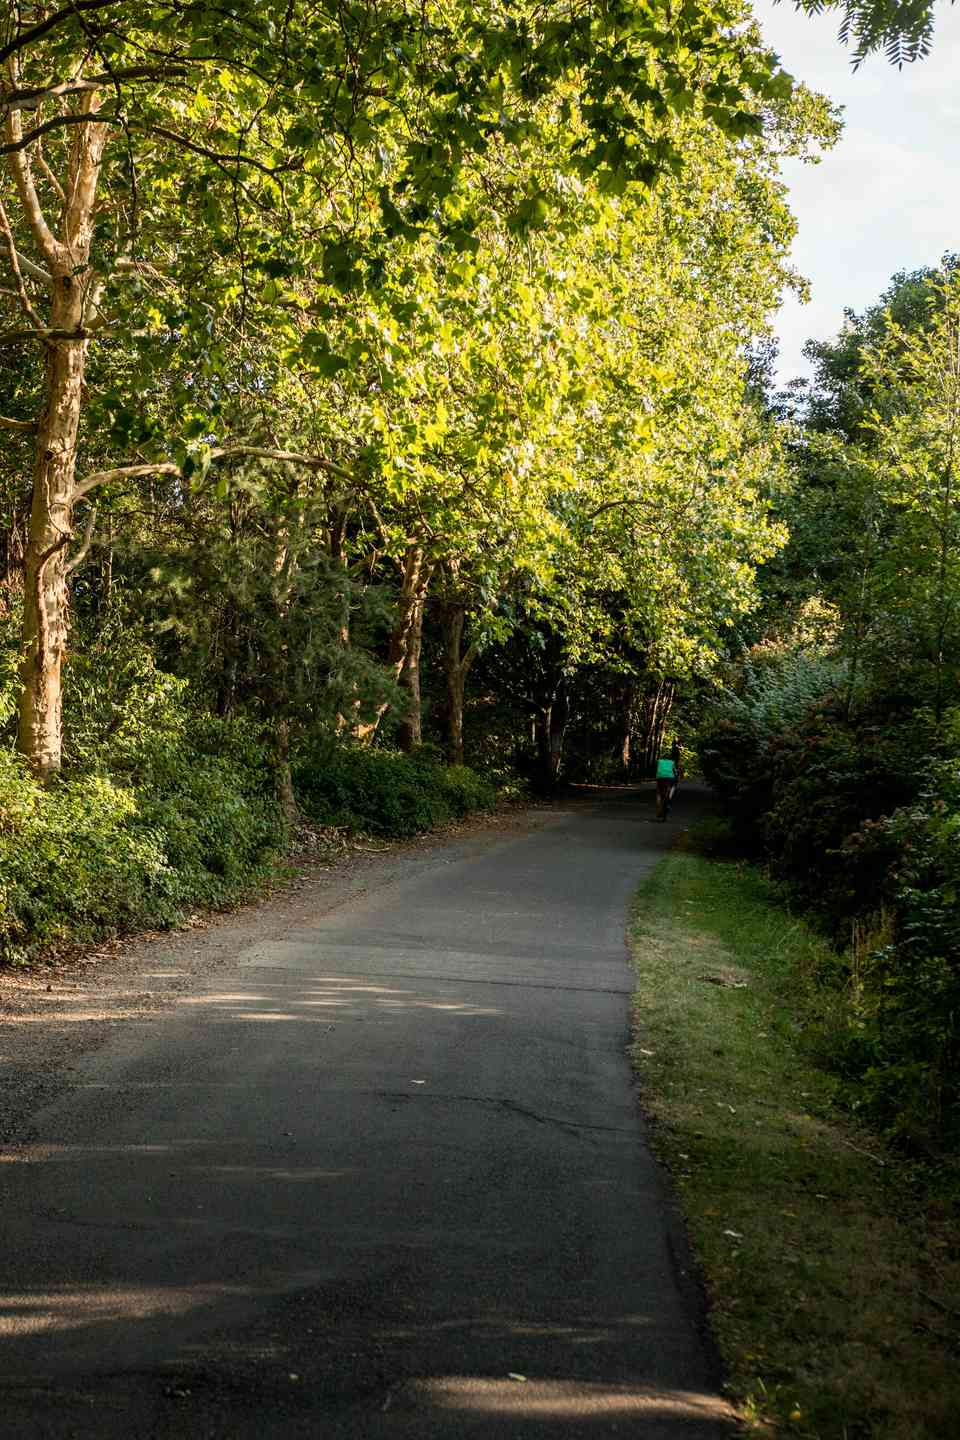 Burke-Gilman Trail in Seattle, Washington